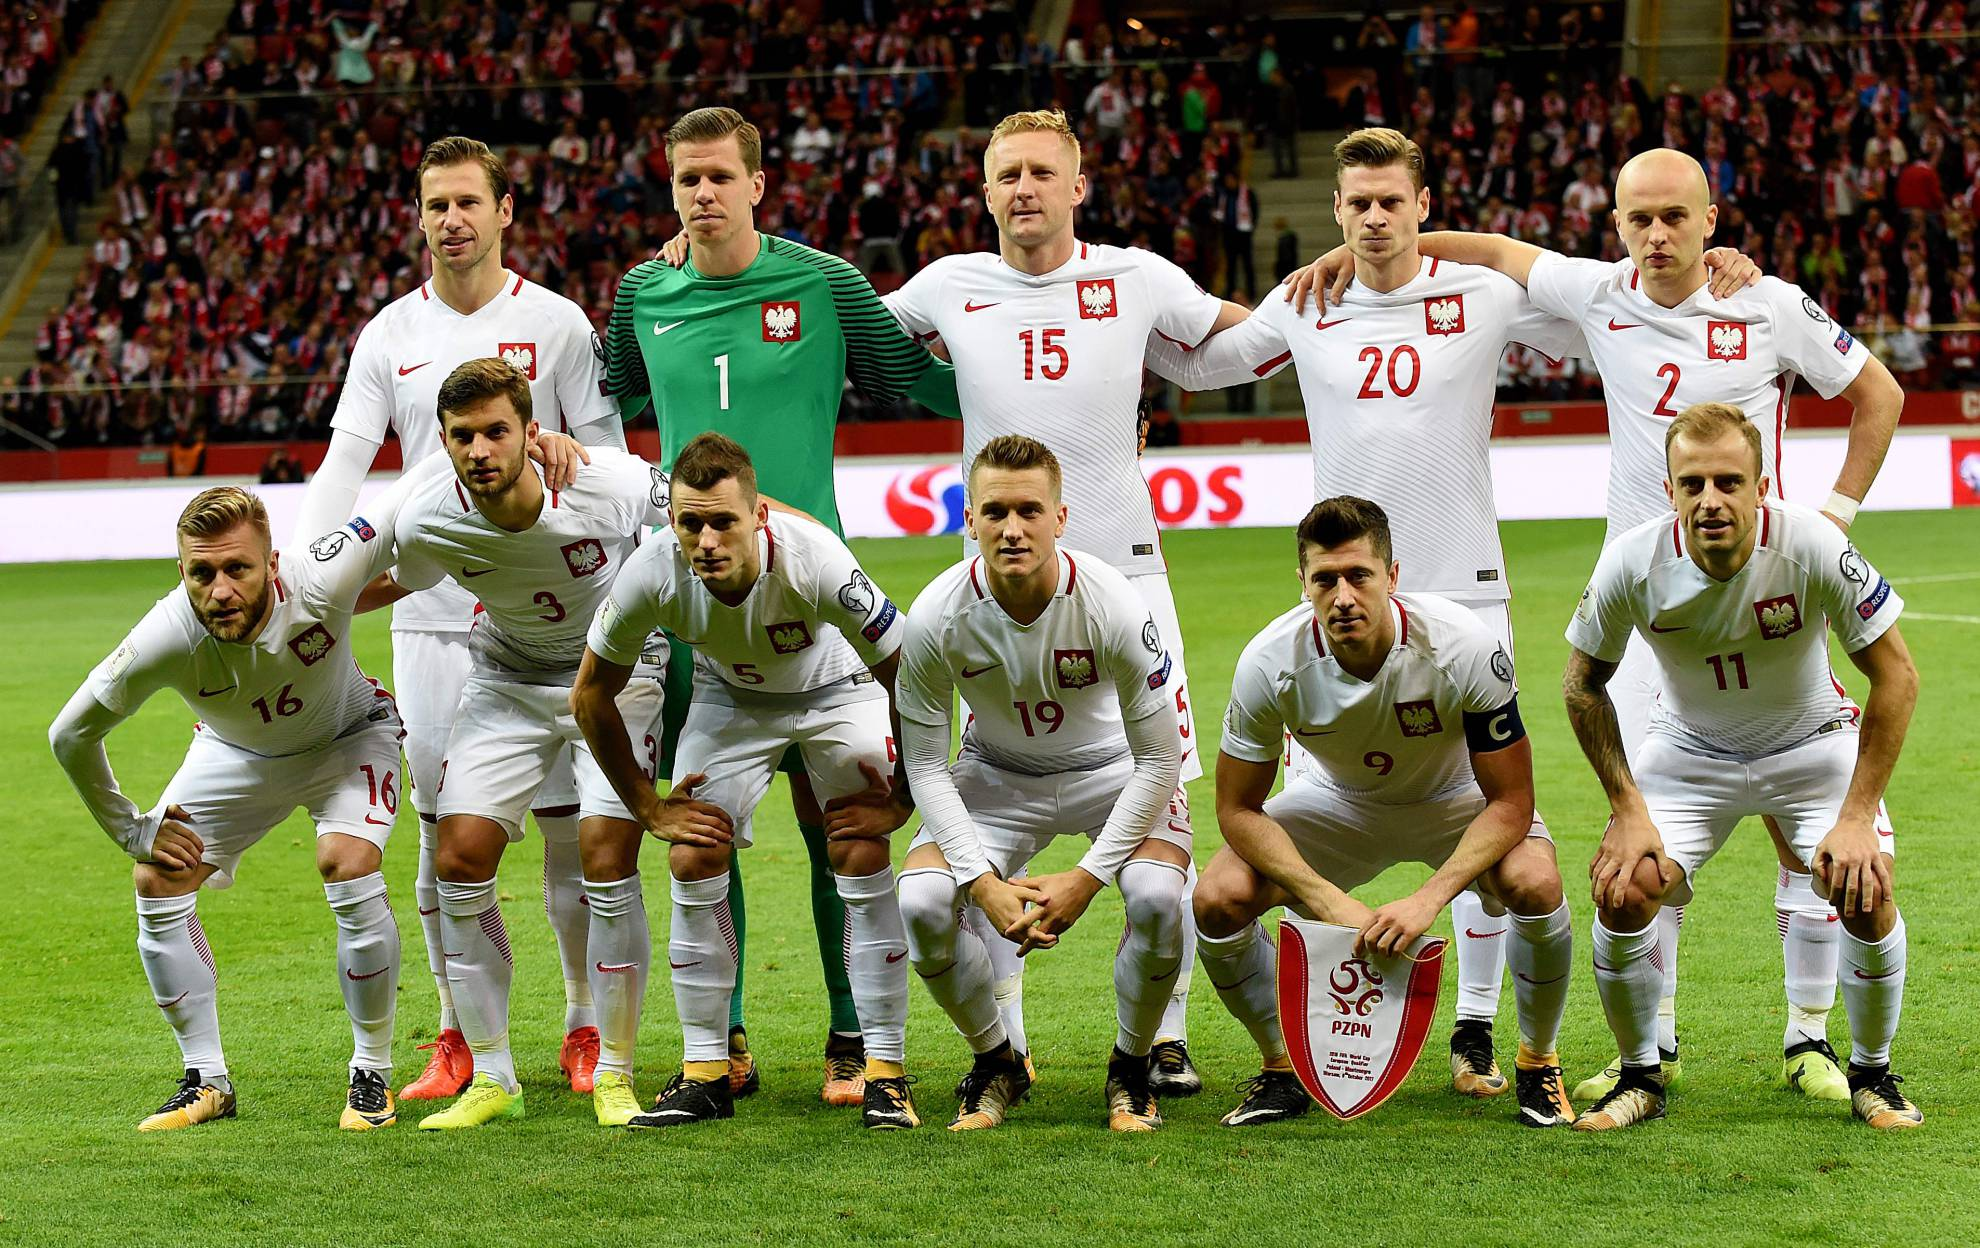 FIFA fines Poland for 'political and offensive' World Cup banner